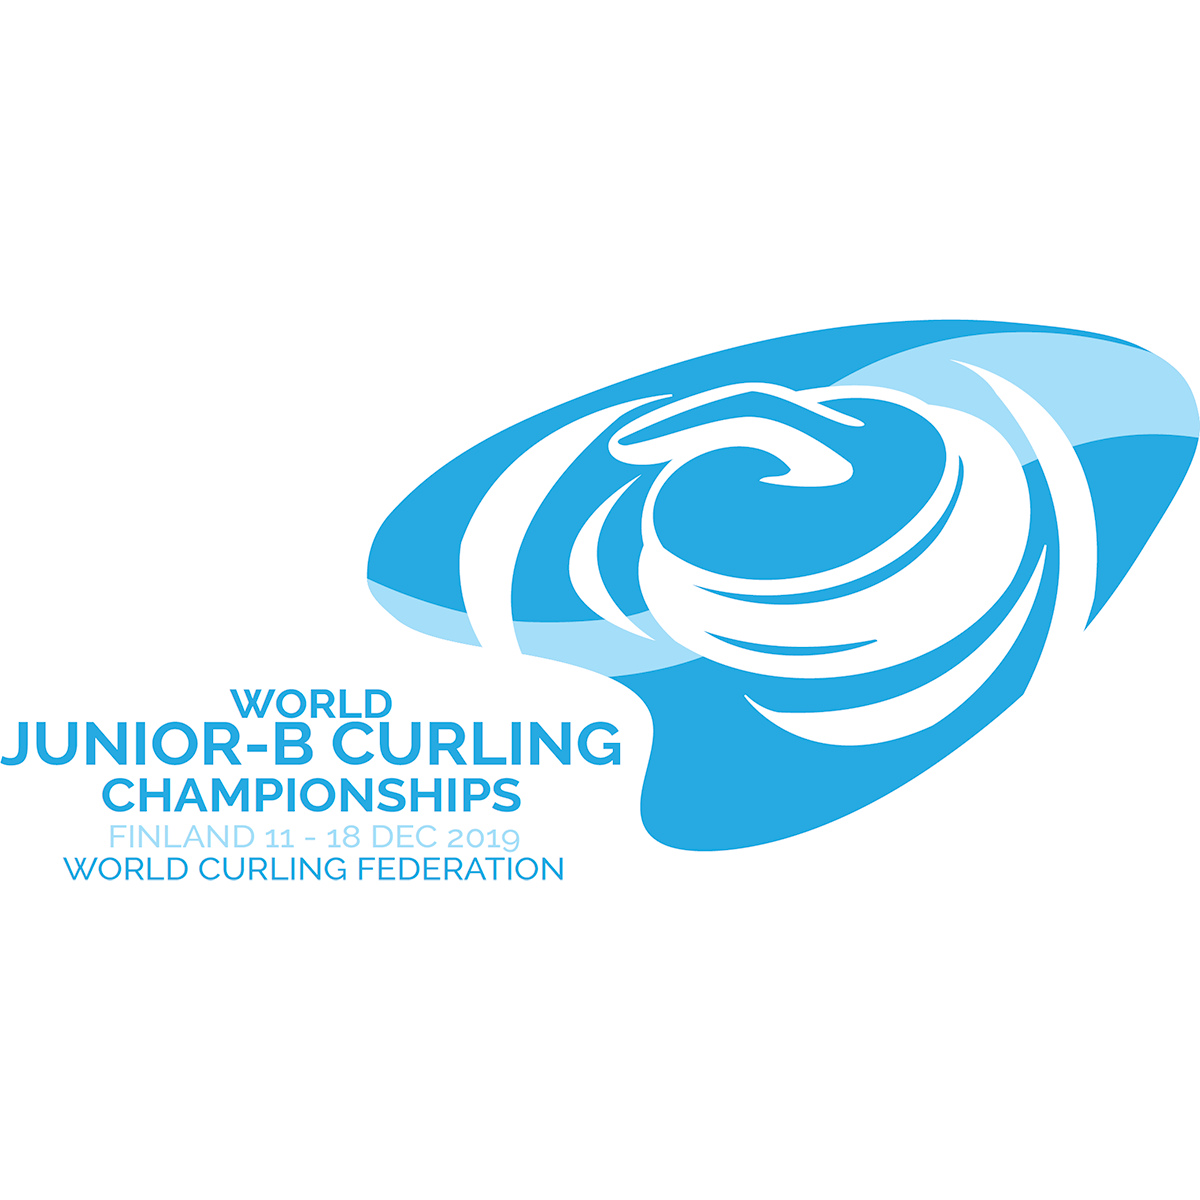 World Junior-B Curling Championships return to Lohja, Finland